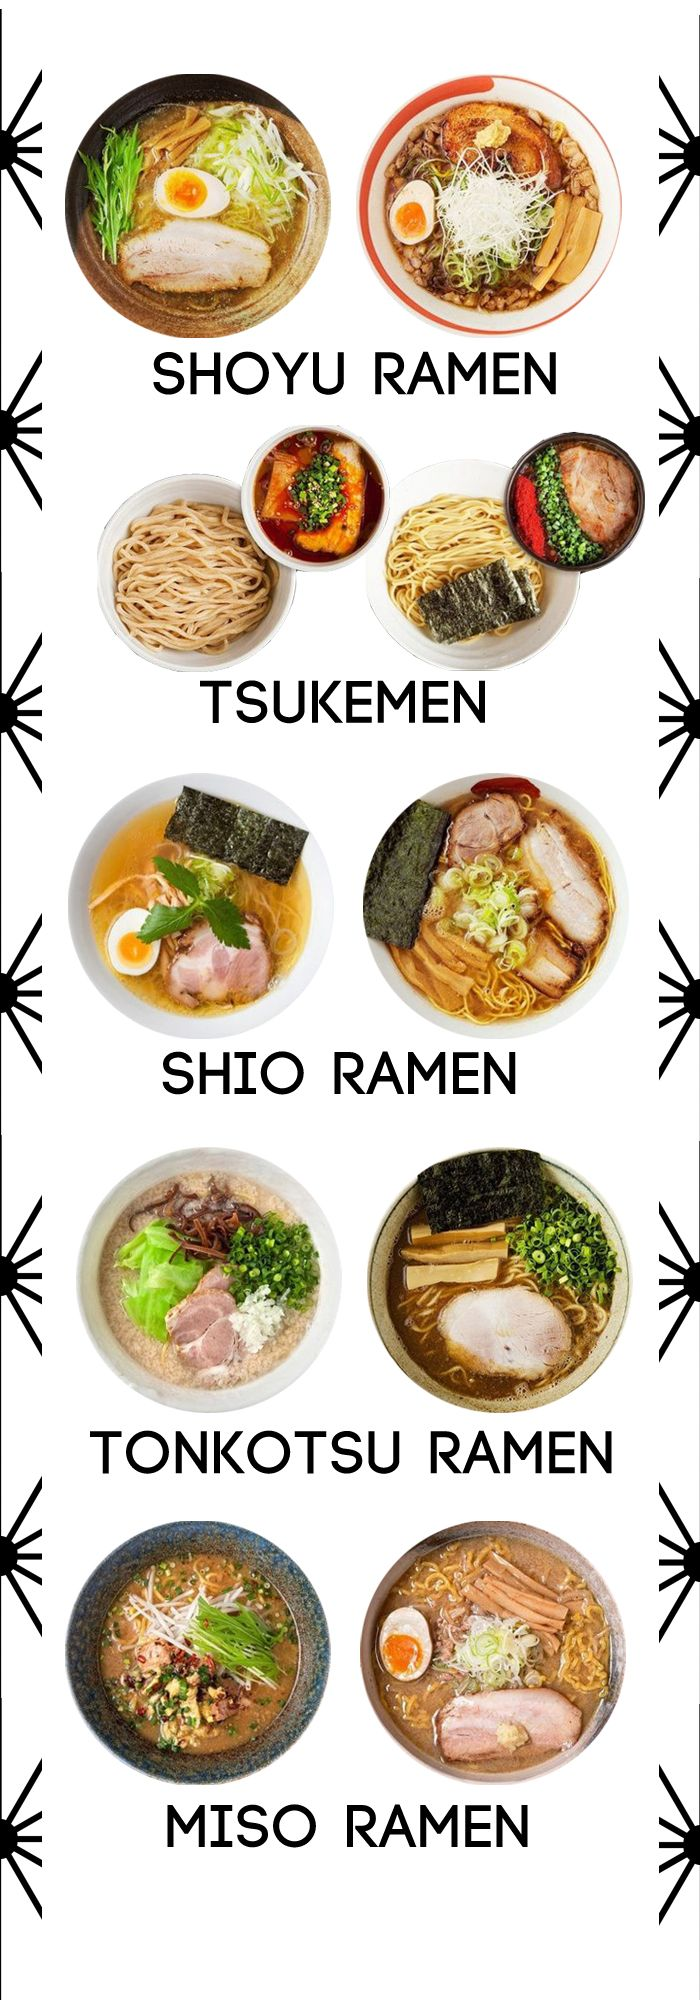 Complete directory of varieties and styles of Japanese ramen.